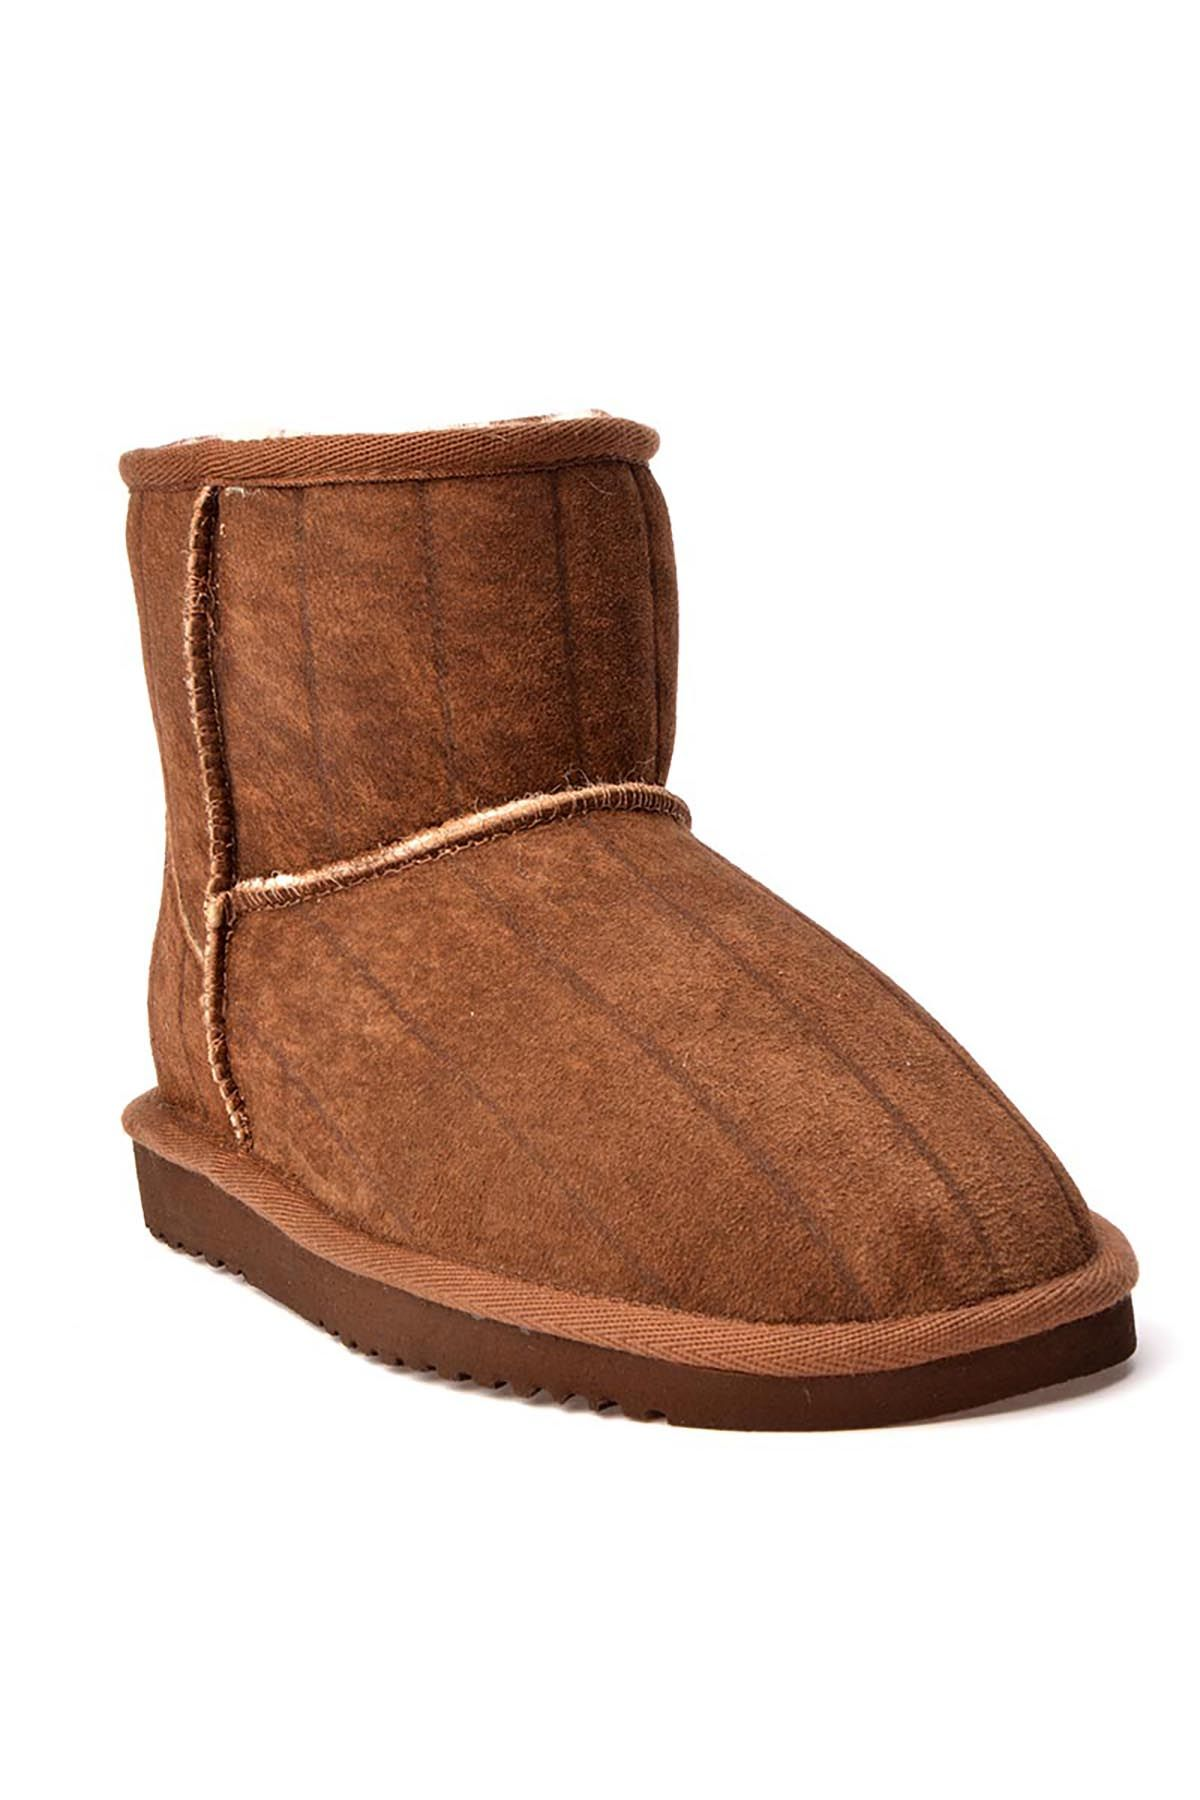 Cool Moon Women Boots From Genuine Fur With Stripes Pattern 990242 Brown